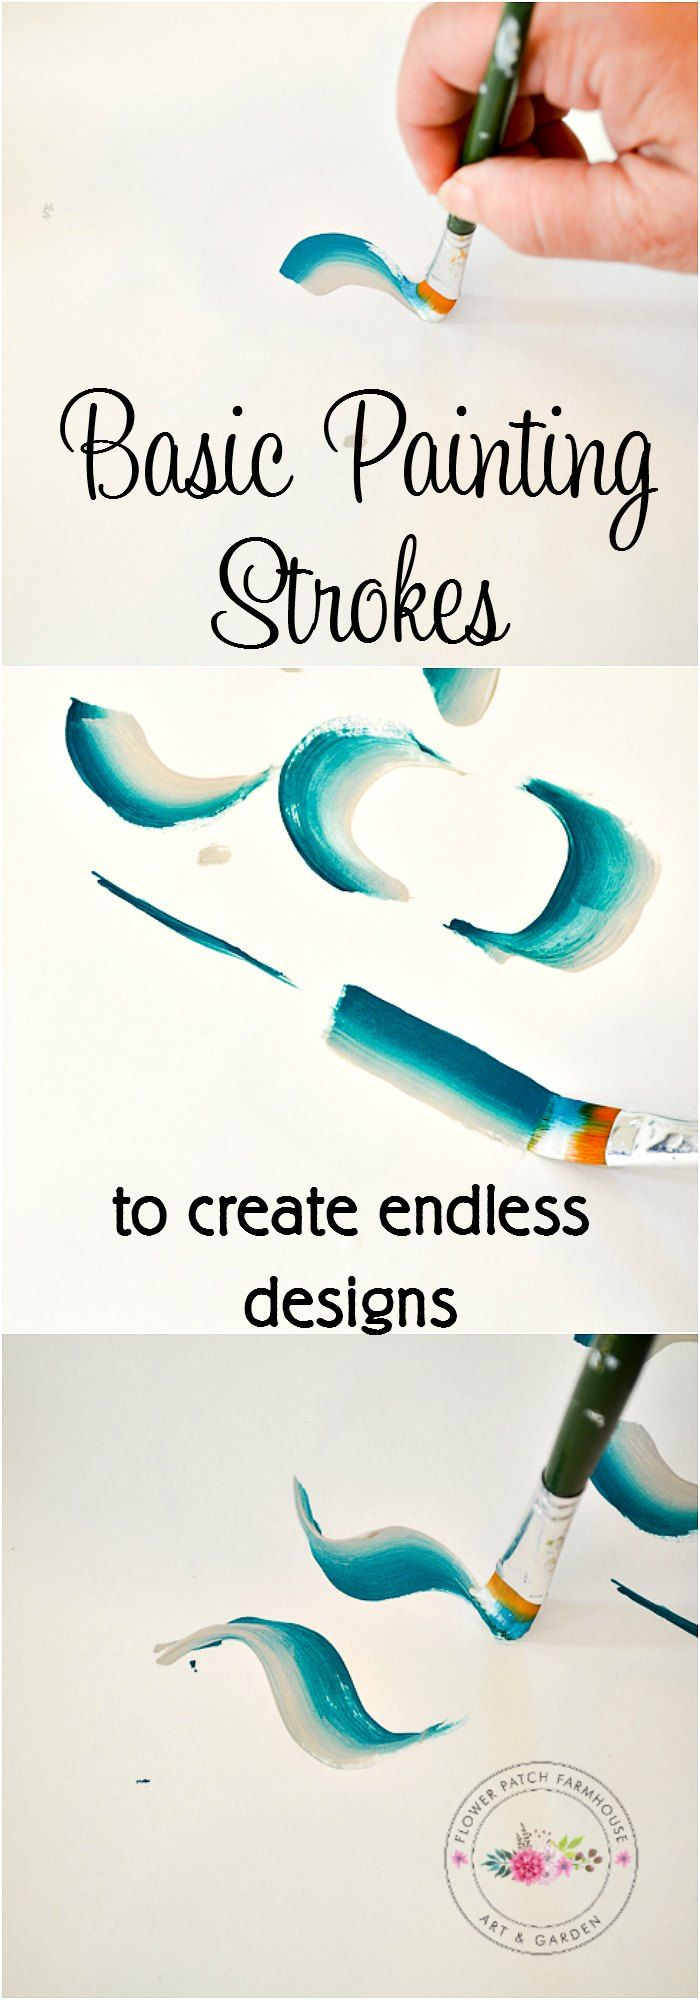 Basic Brush Strokes for decorative painting. With just a few different strokes you can make endless designs, scroll work, flowers and other fabulous DIY Decor. Paint gifts or just enjoy crafting for t